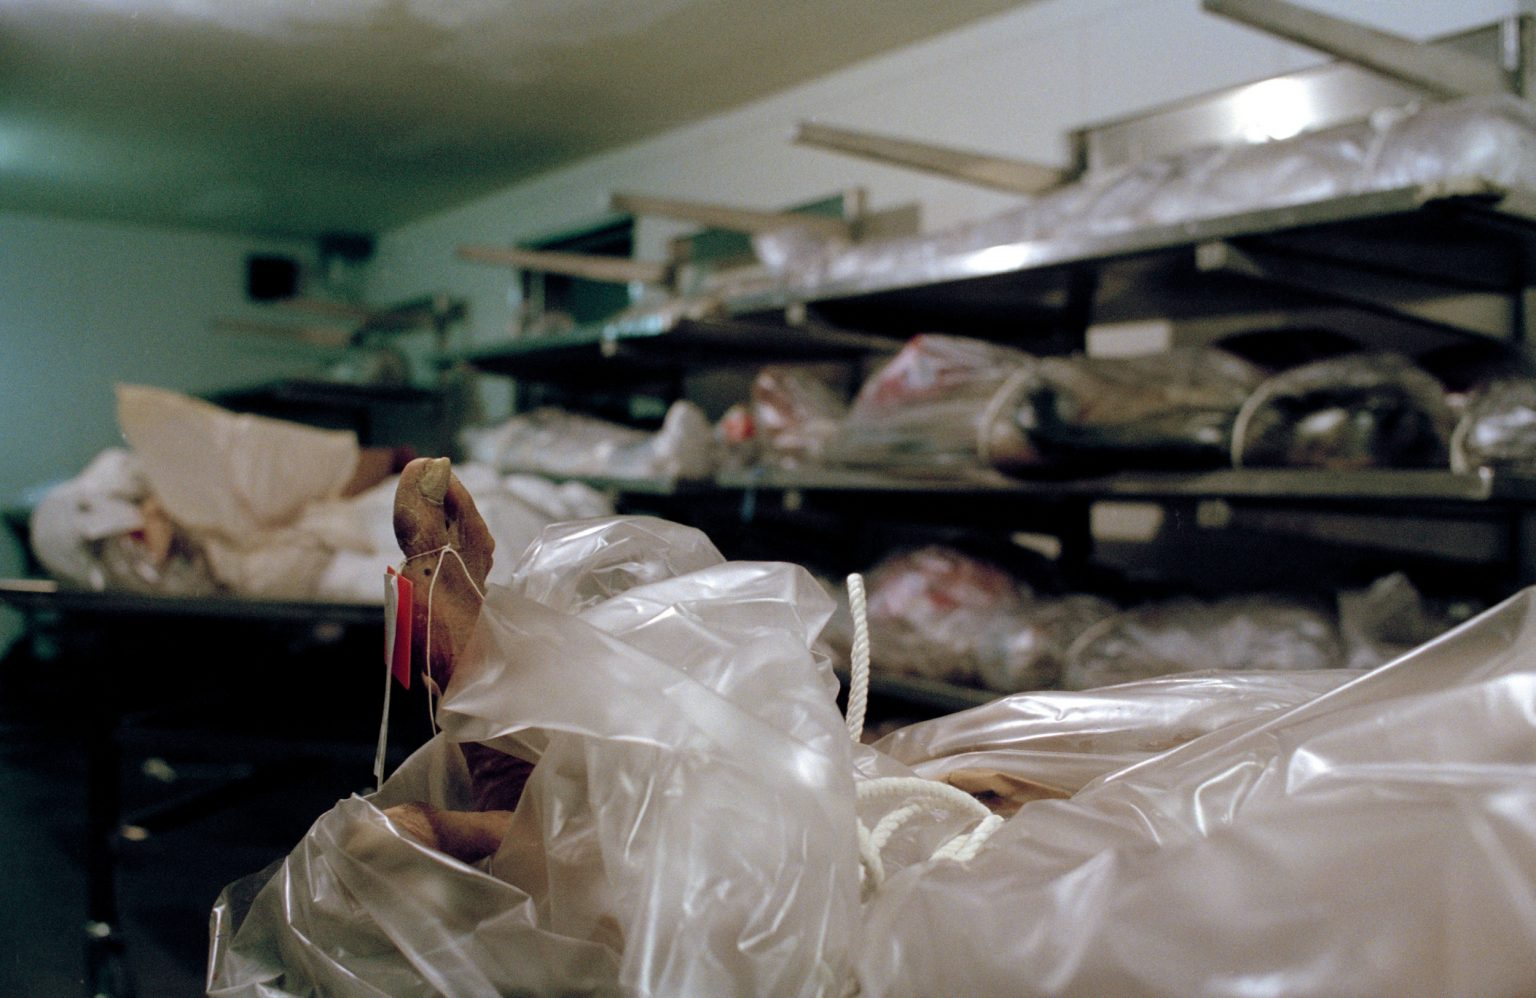 Morgue. Here are kept the bodies of the unidentified people for six months. If nobody claims them they are cremated after 6 months. Skid Row, Los Angeles, United States 2004-2005